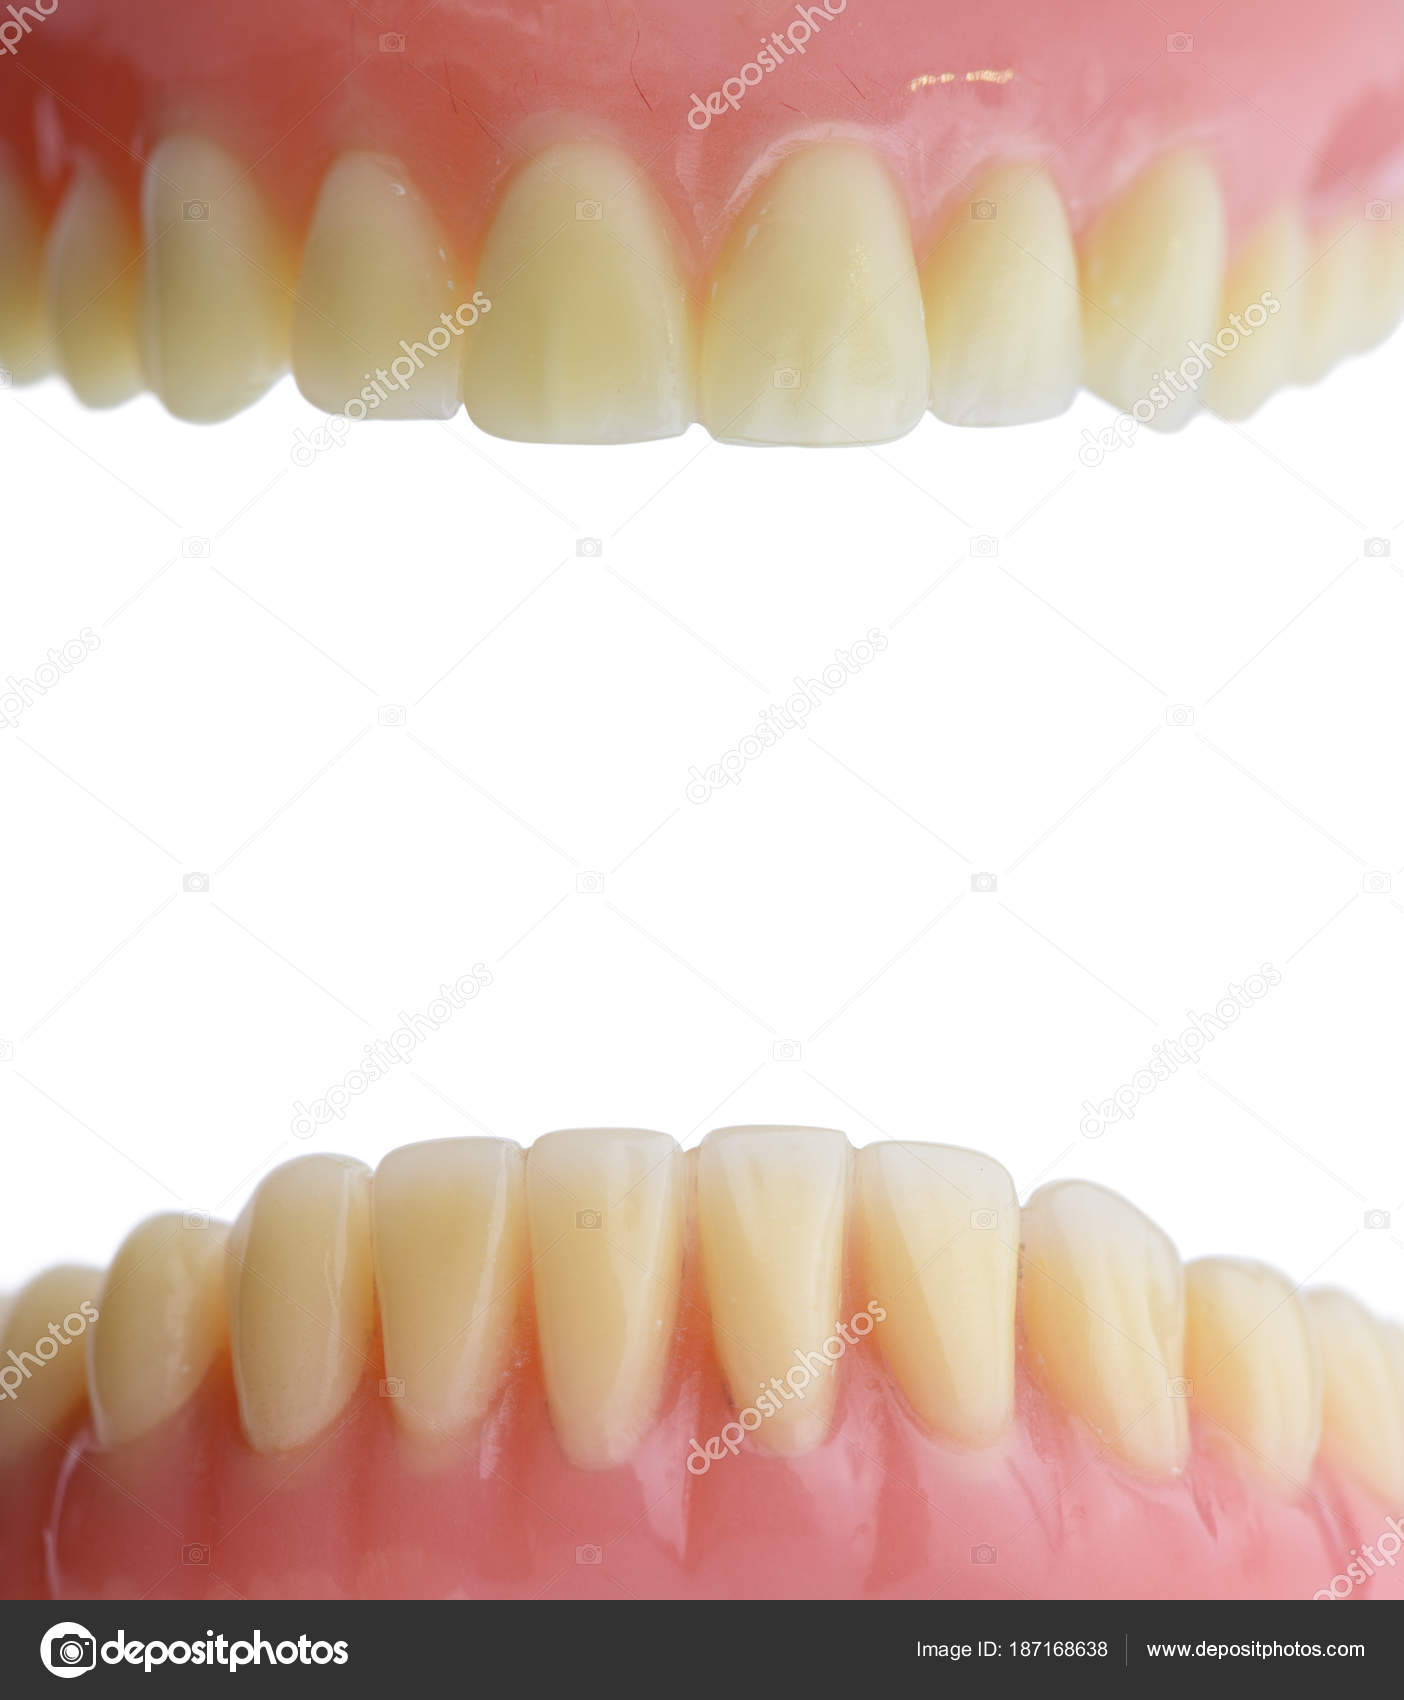 Teeth Gum Human Mouth Anatomy Isolated White Background — Stock ...